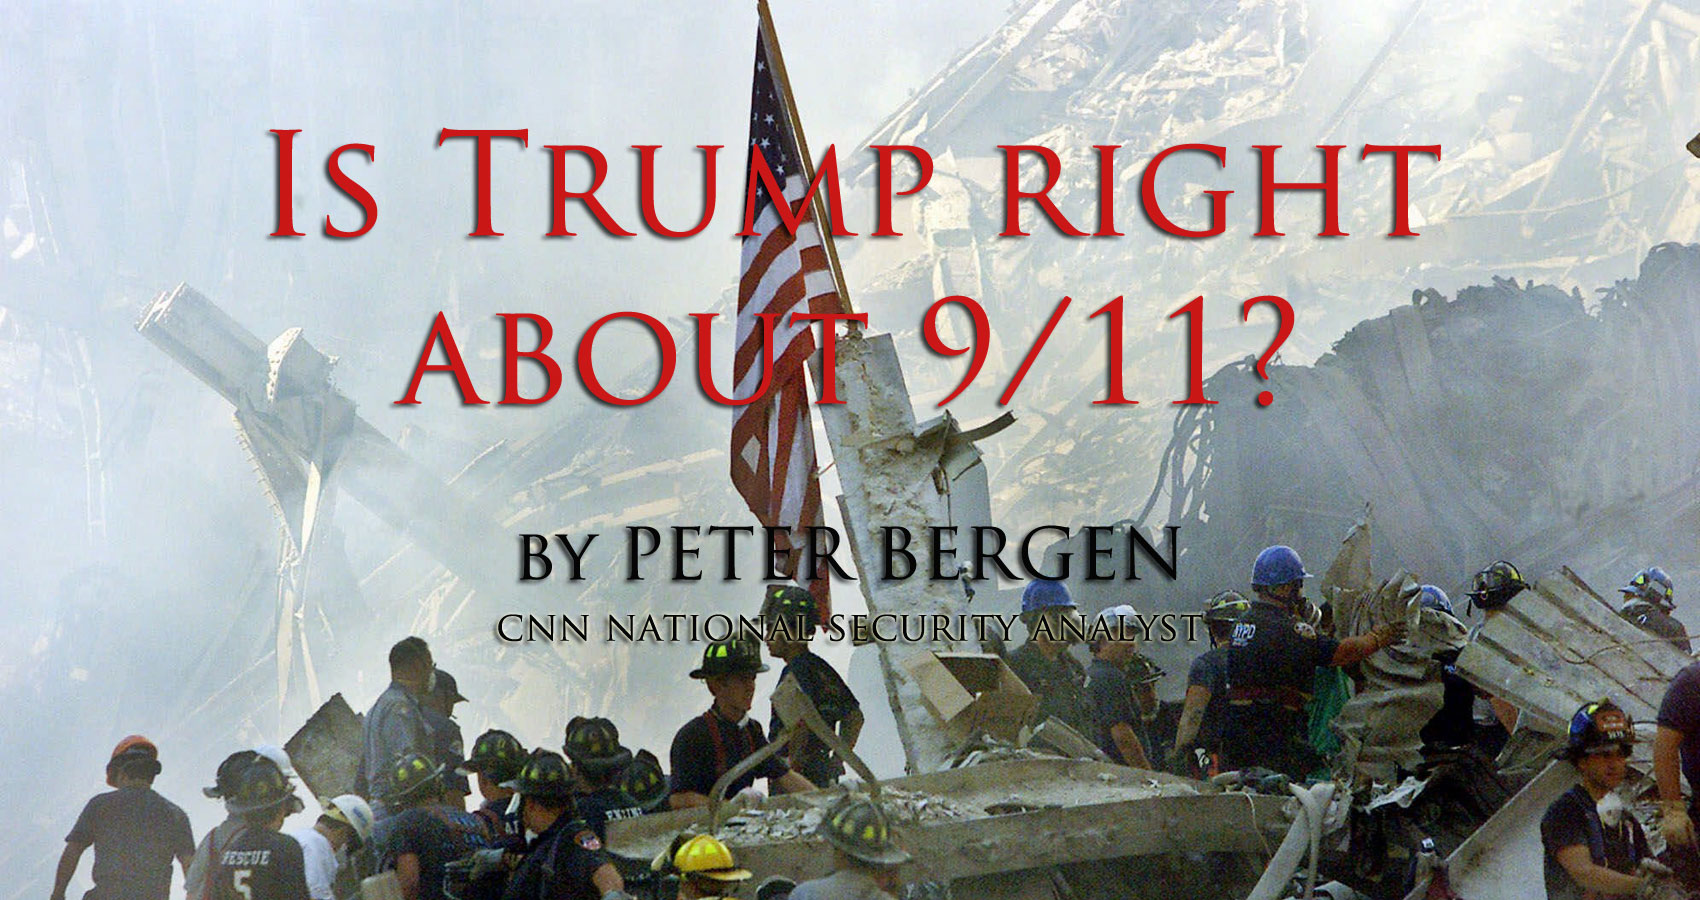 Is Trump right about 9/11? by Peter Bergen at Spillwords.com